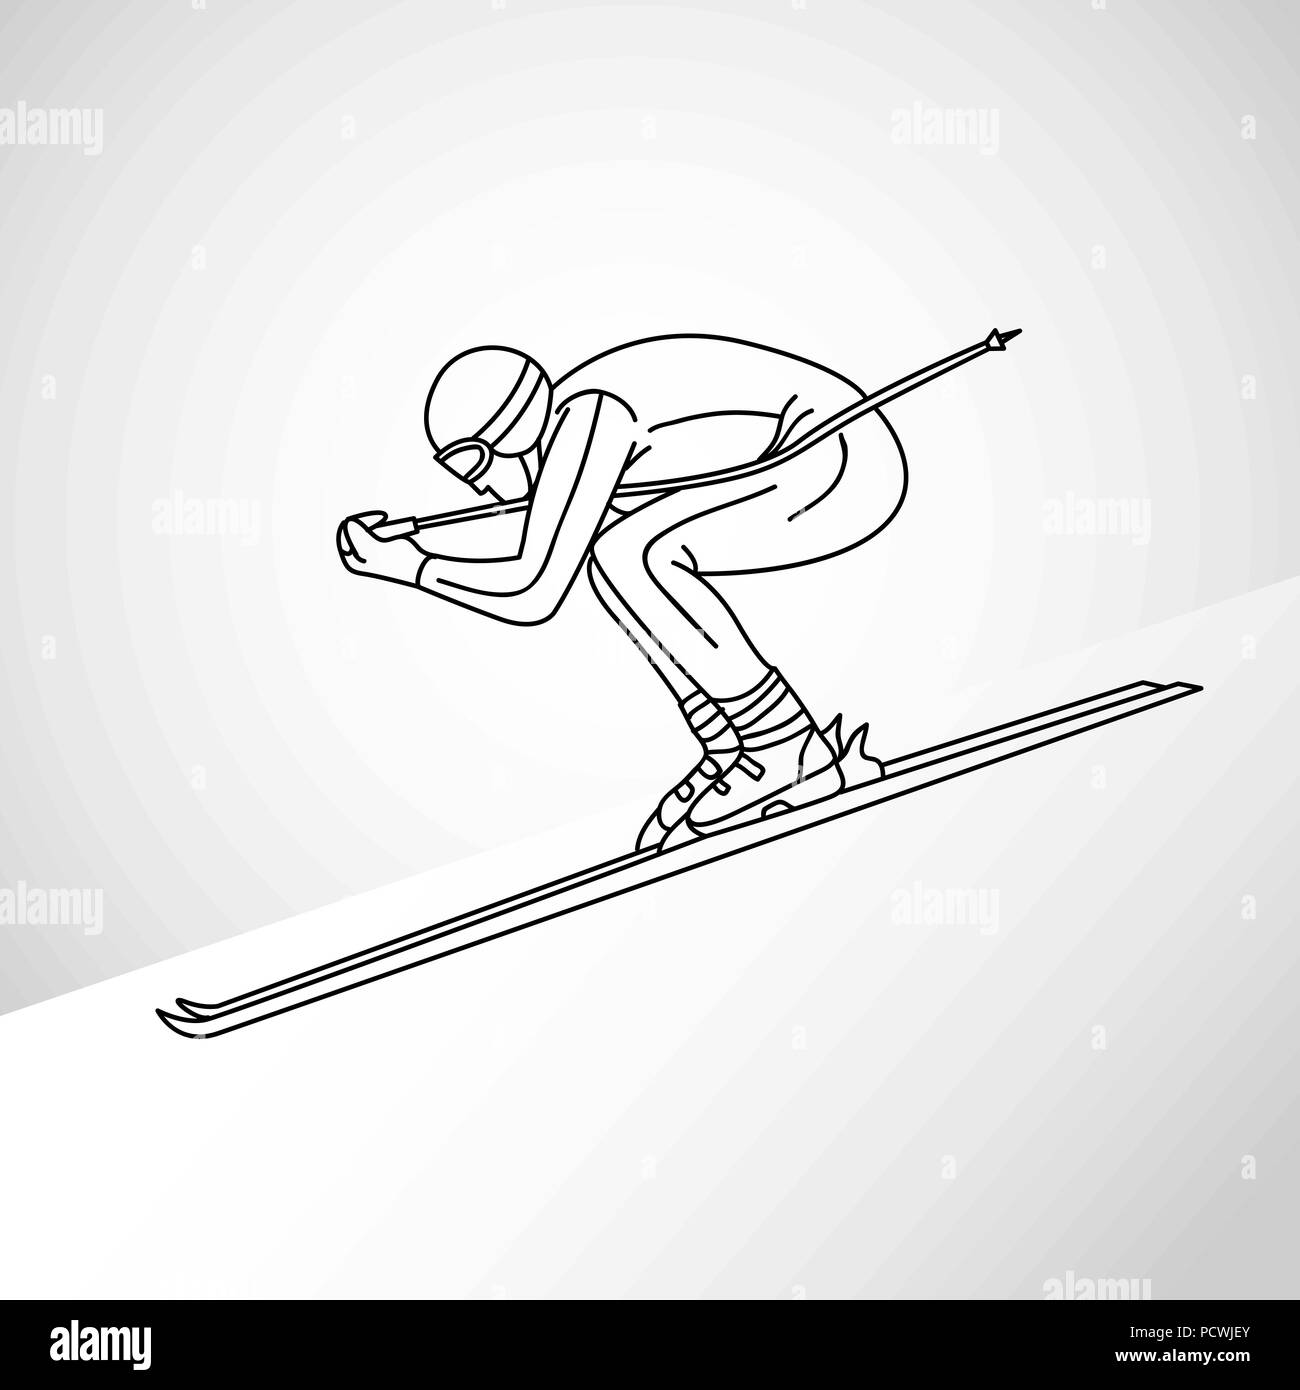 skiing vector logo icon illustration - Stock Image